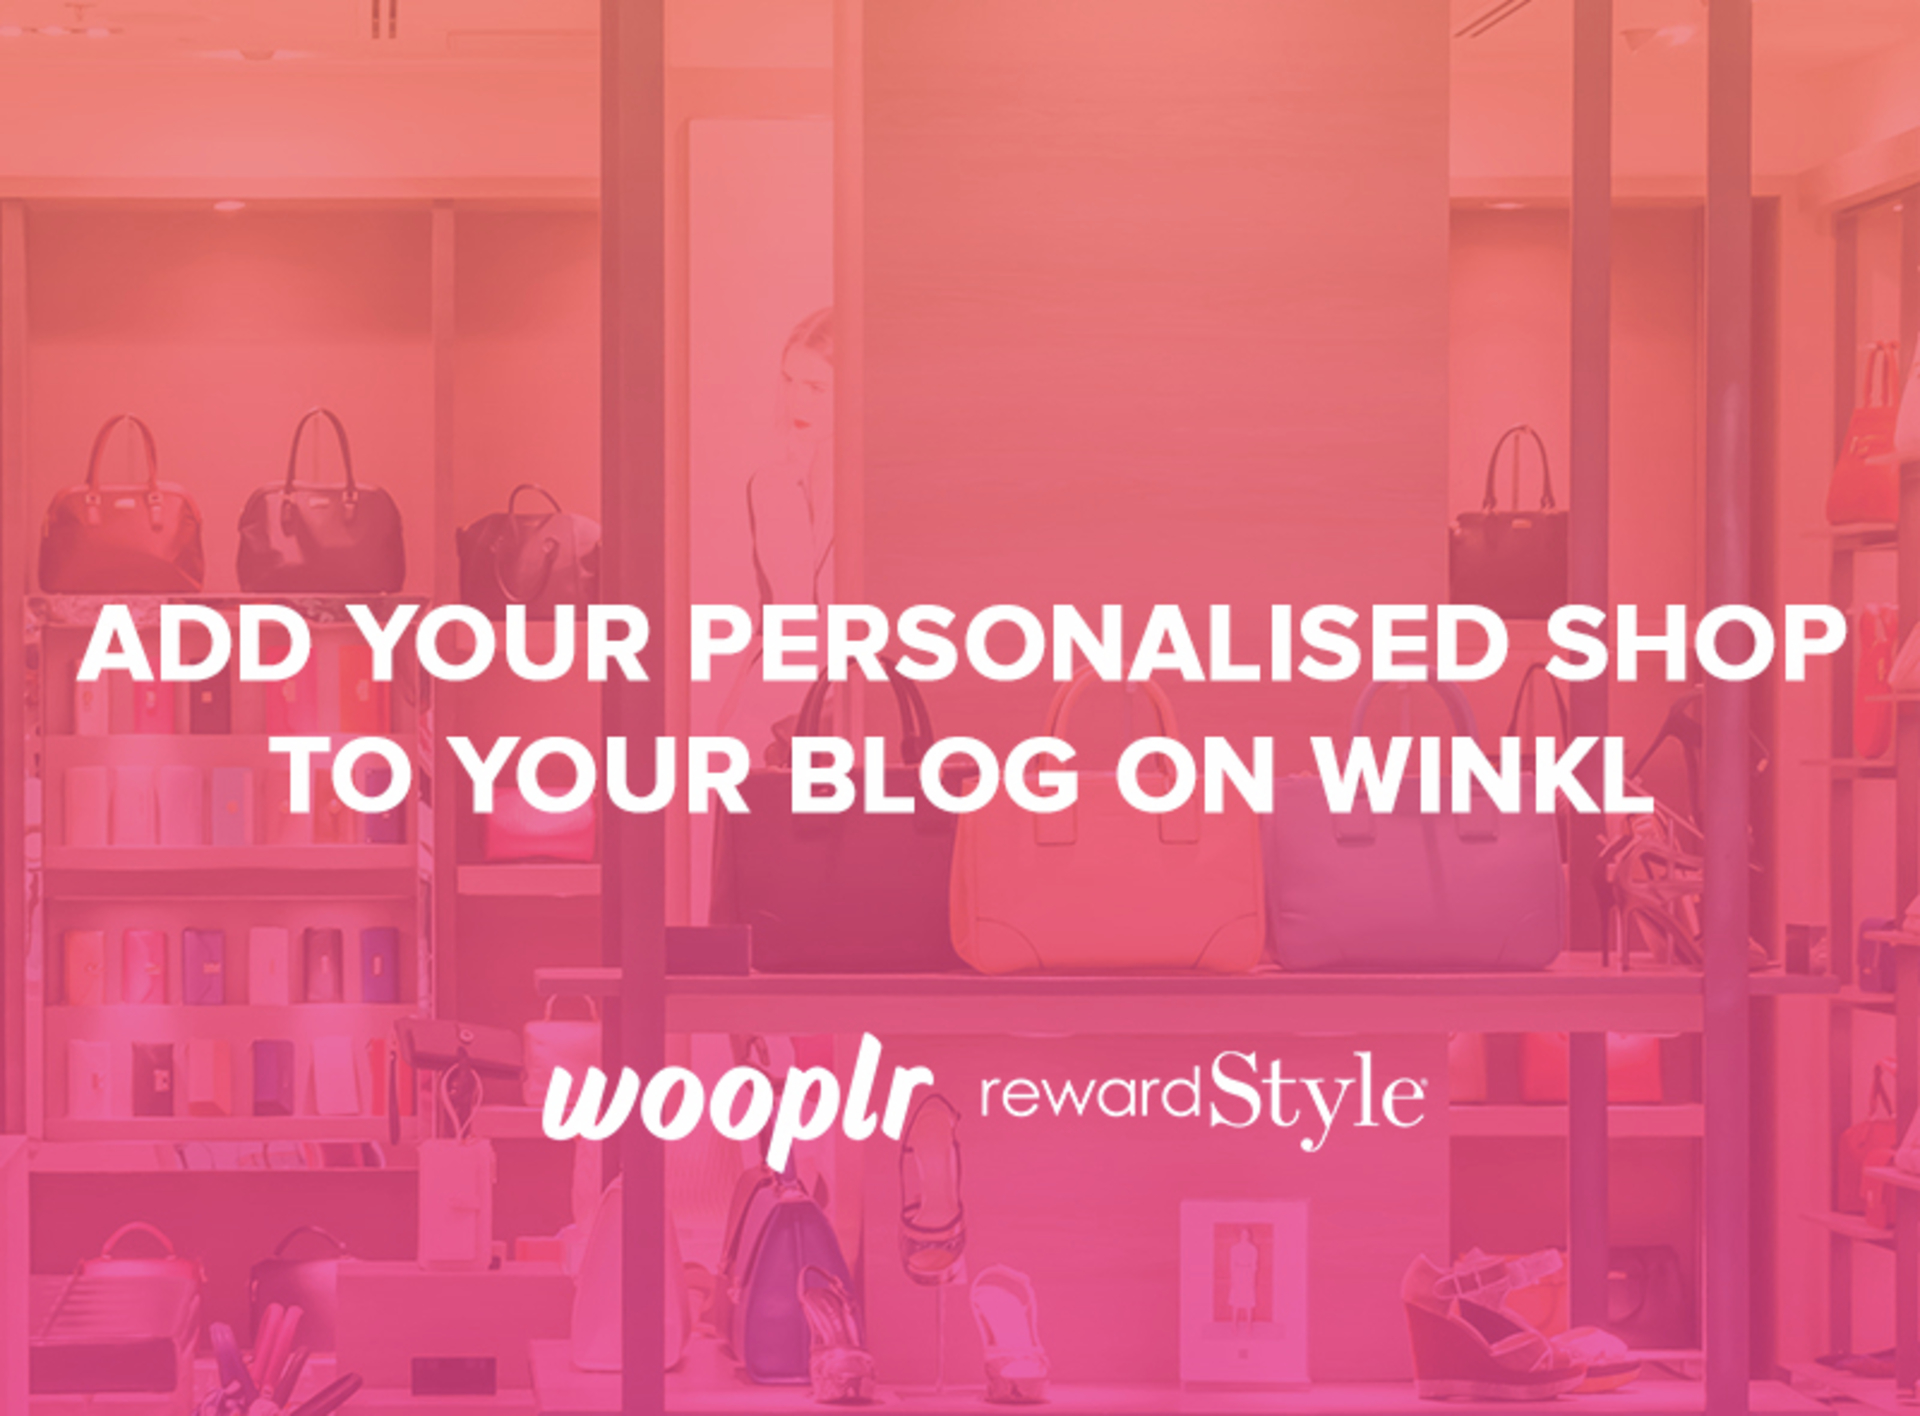 Add a shop (ex: Wooplr) to your blog on Winkl and start monetising your audience! image